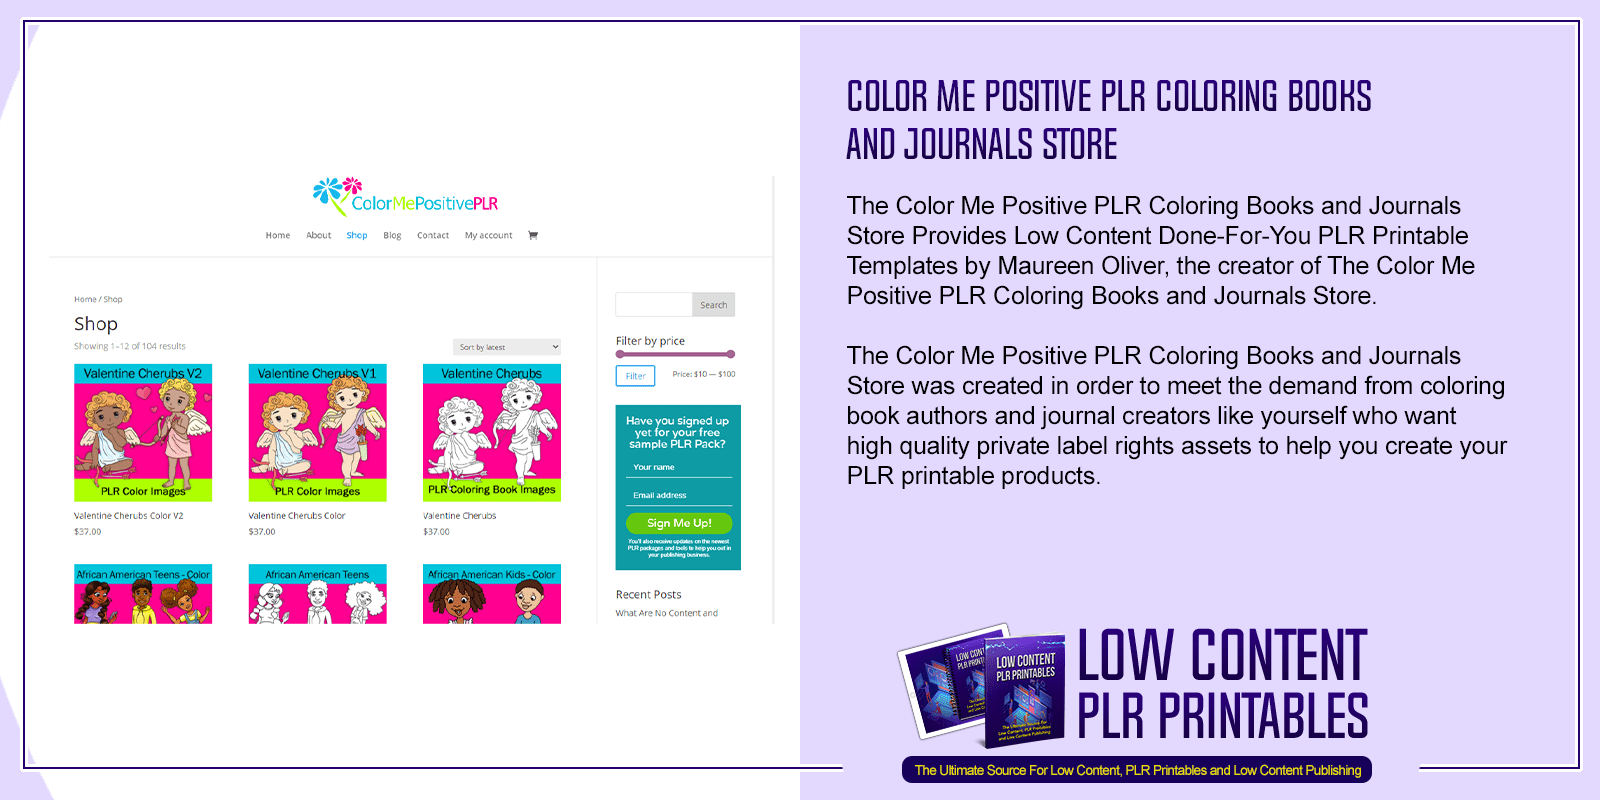 Color Me Positive PLR Coloring Books and Journals Store